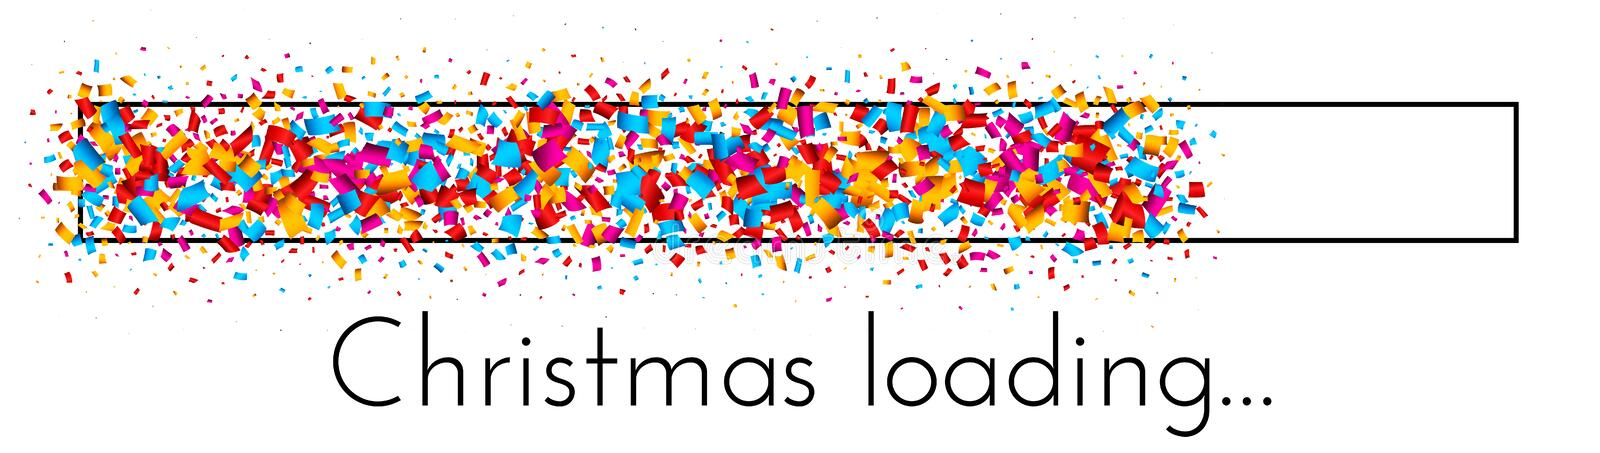 Christmas loading banner with colorful progress indicator. Christmas loading creative banner with progress indicator made of bright confetti. Vector background royalty free illustration